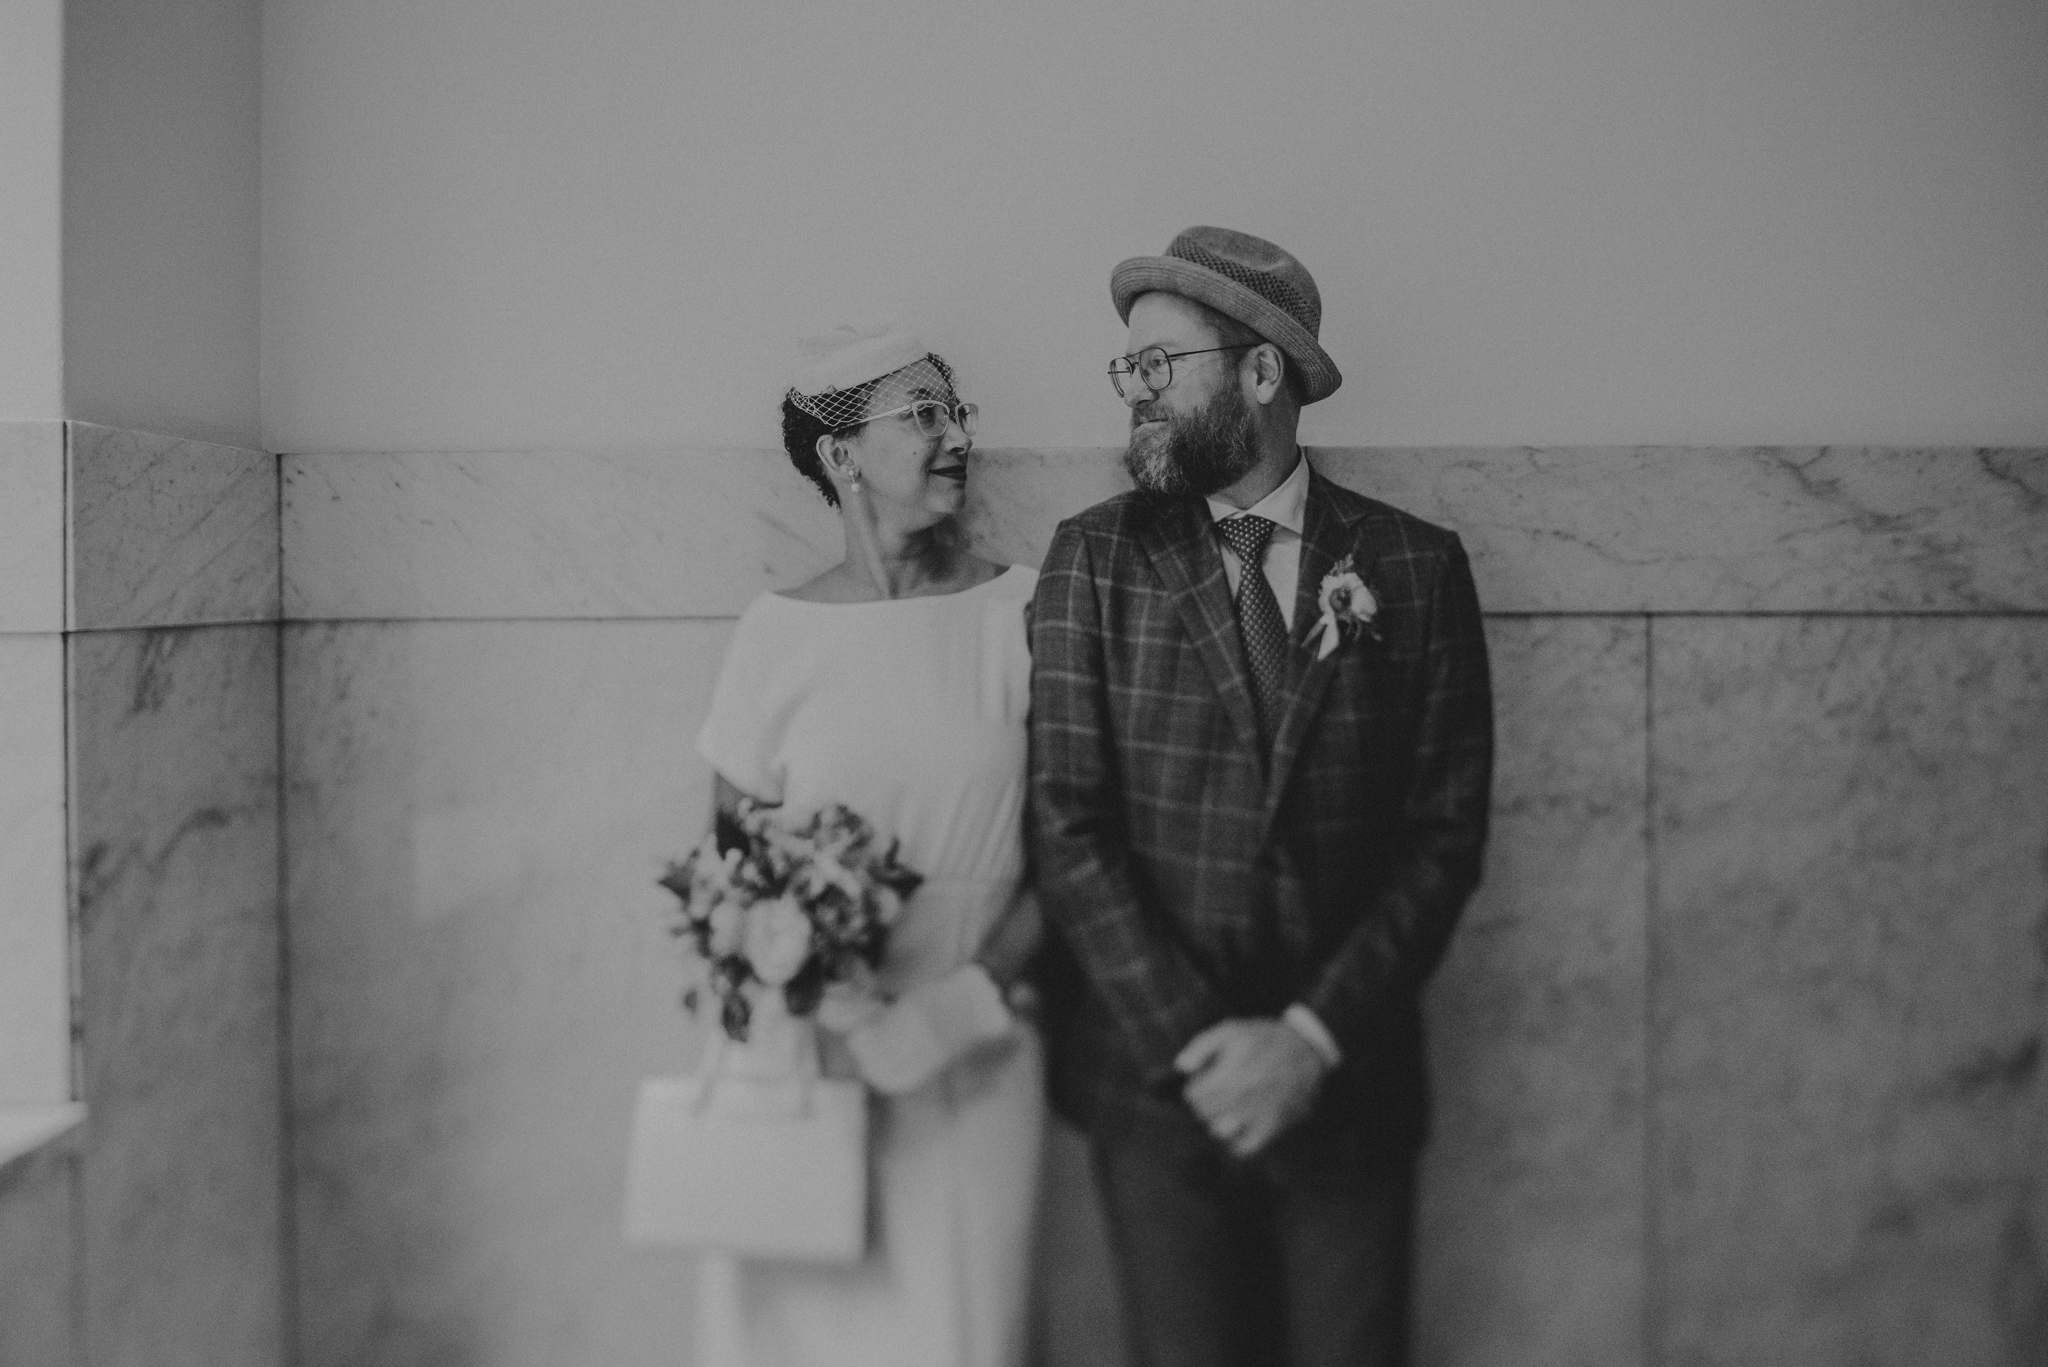 Los Angeles Wedding Photographer - Portland Elopement Photographer - IsaiahAndTaylor.com-014.jpg